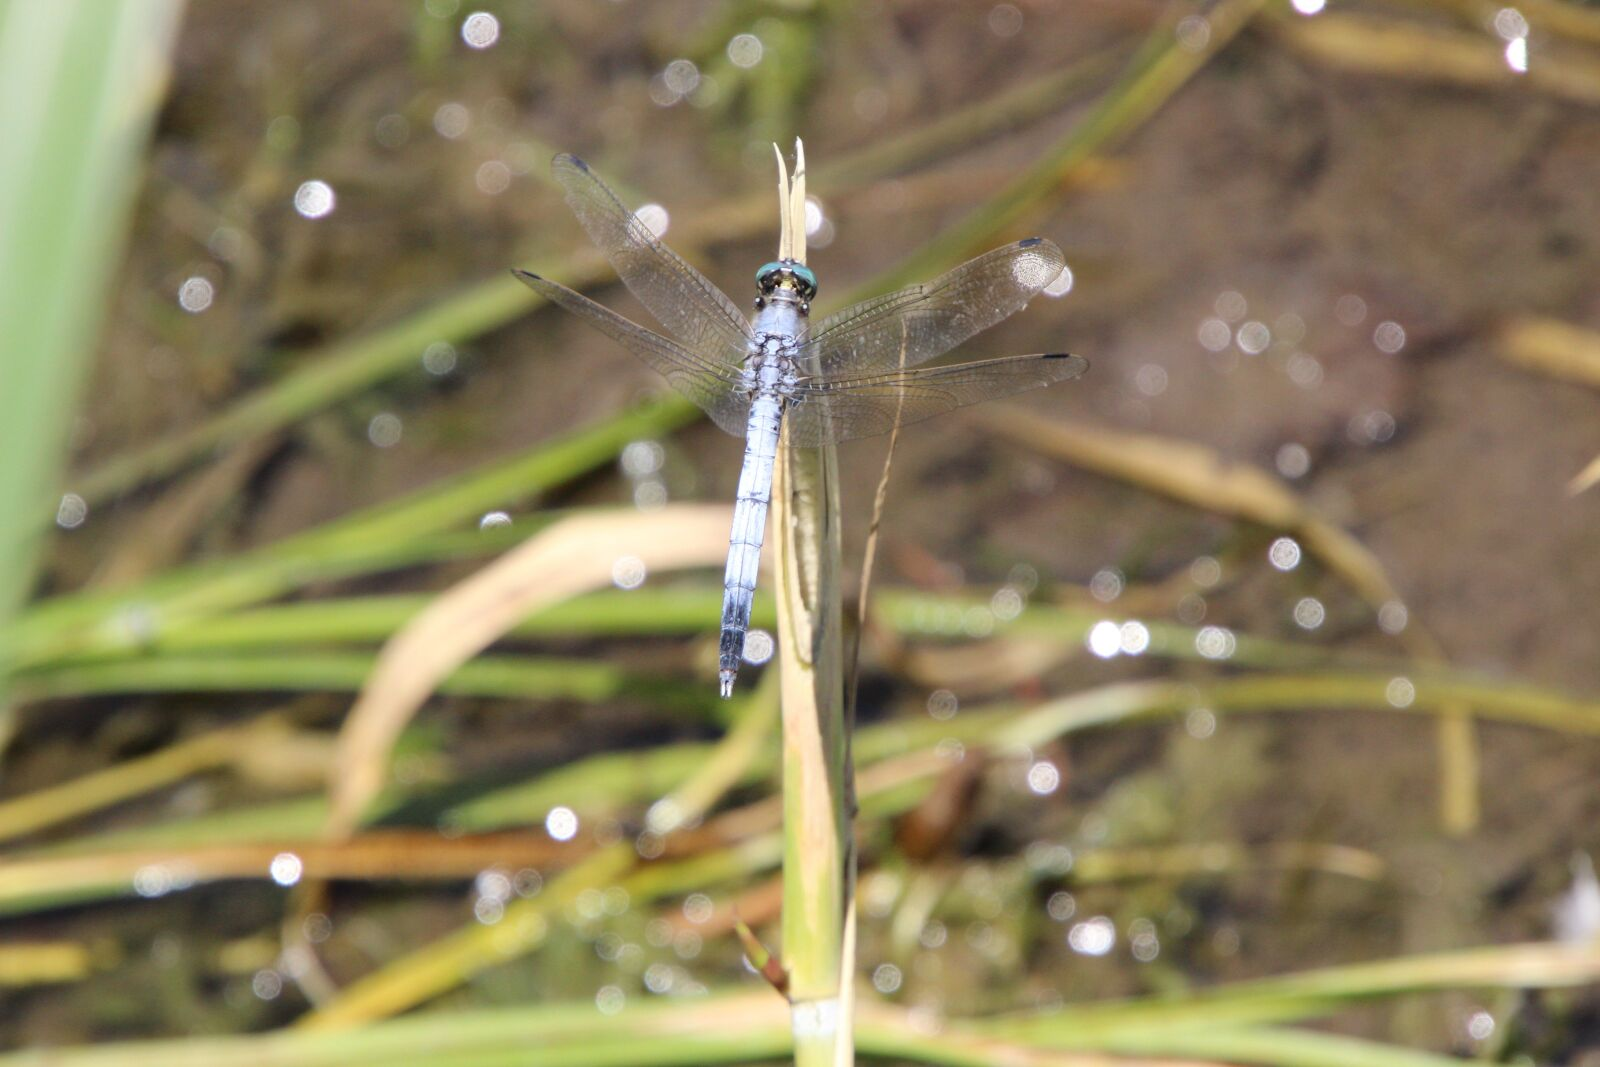 """Canon EOS 600D (Rebel EOS T3i / EOS Kiss X5) sample photo. """"Dragonfly, insect, stem"""" photography"""